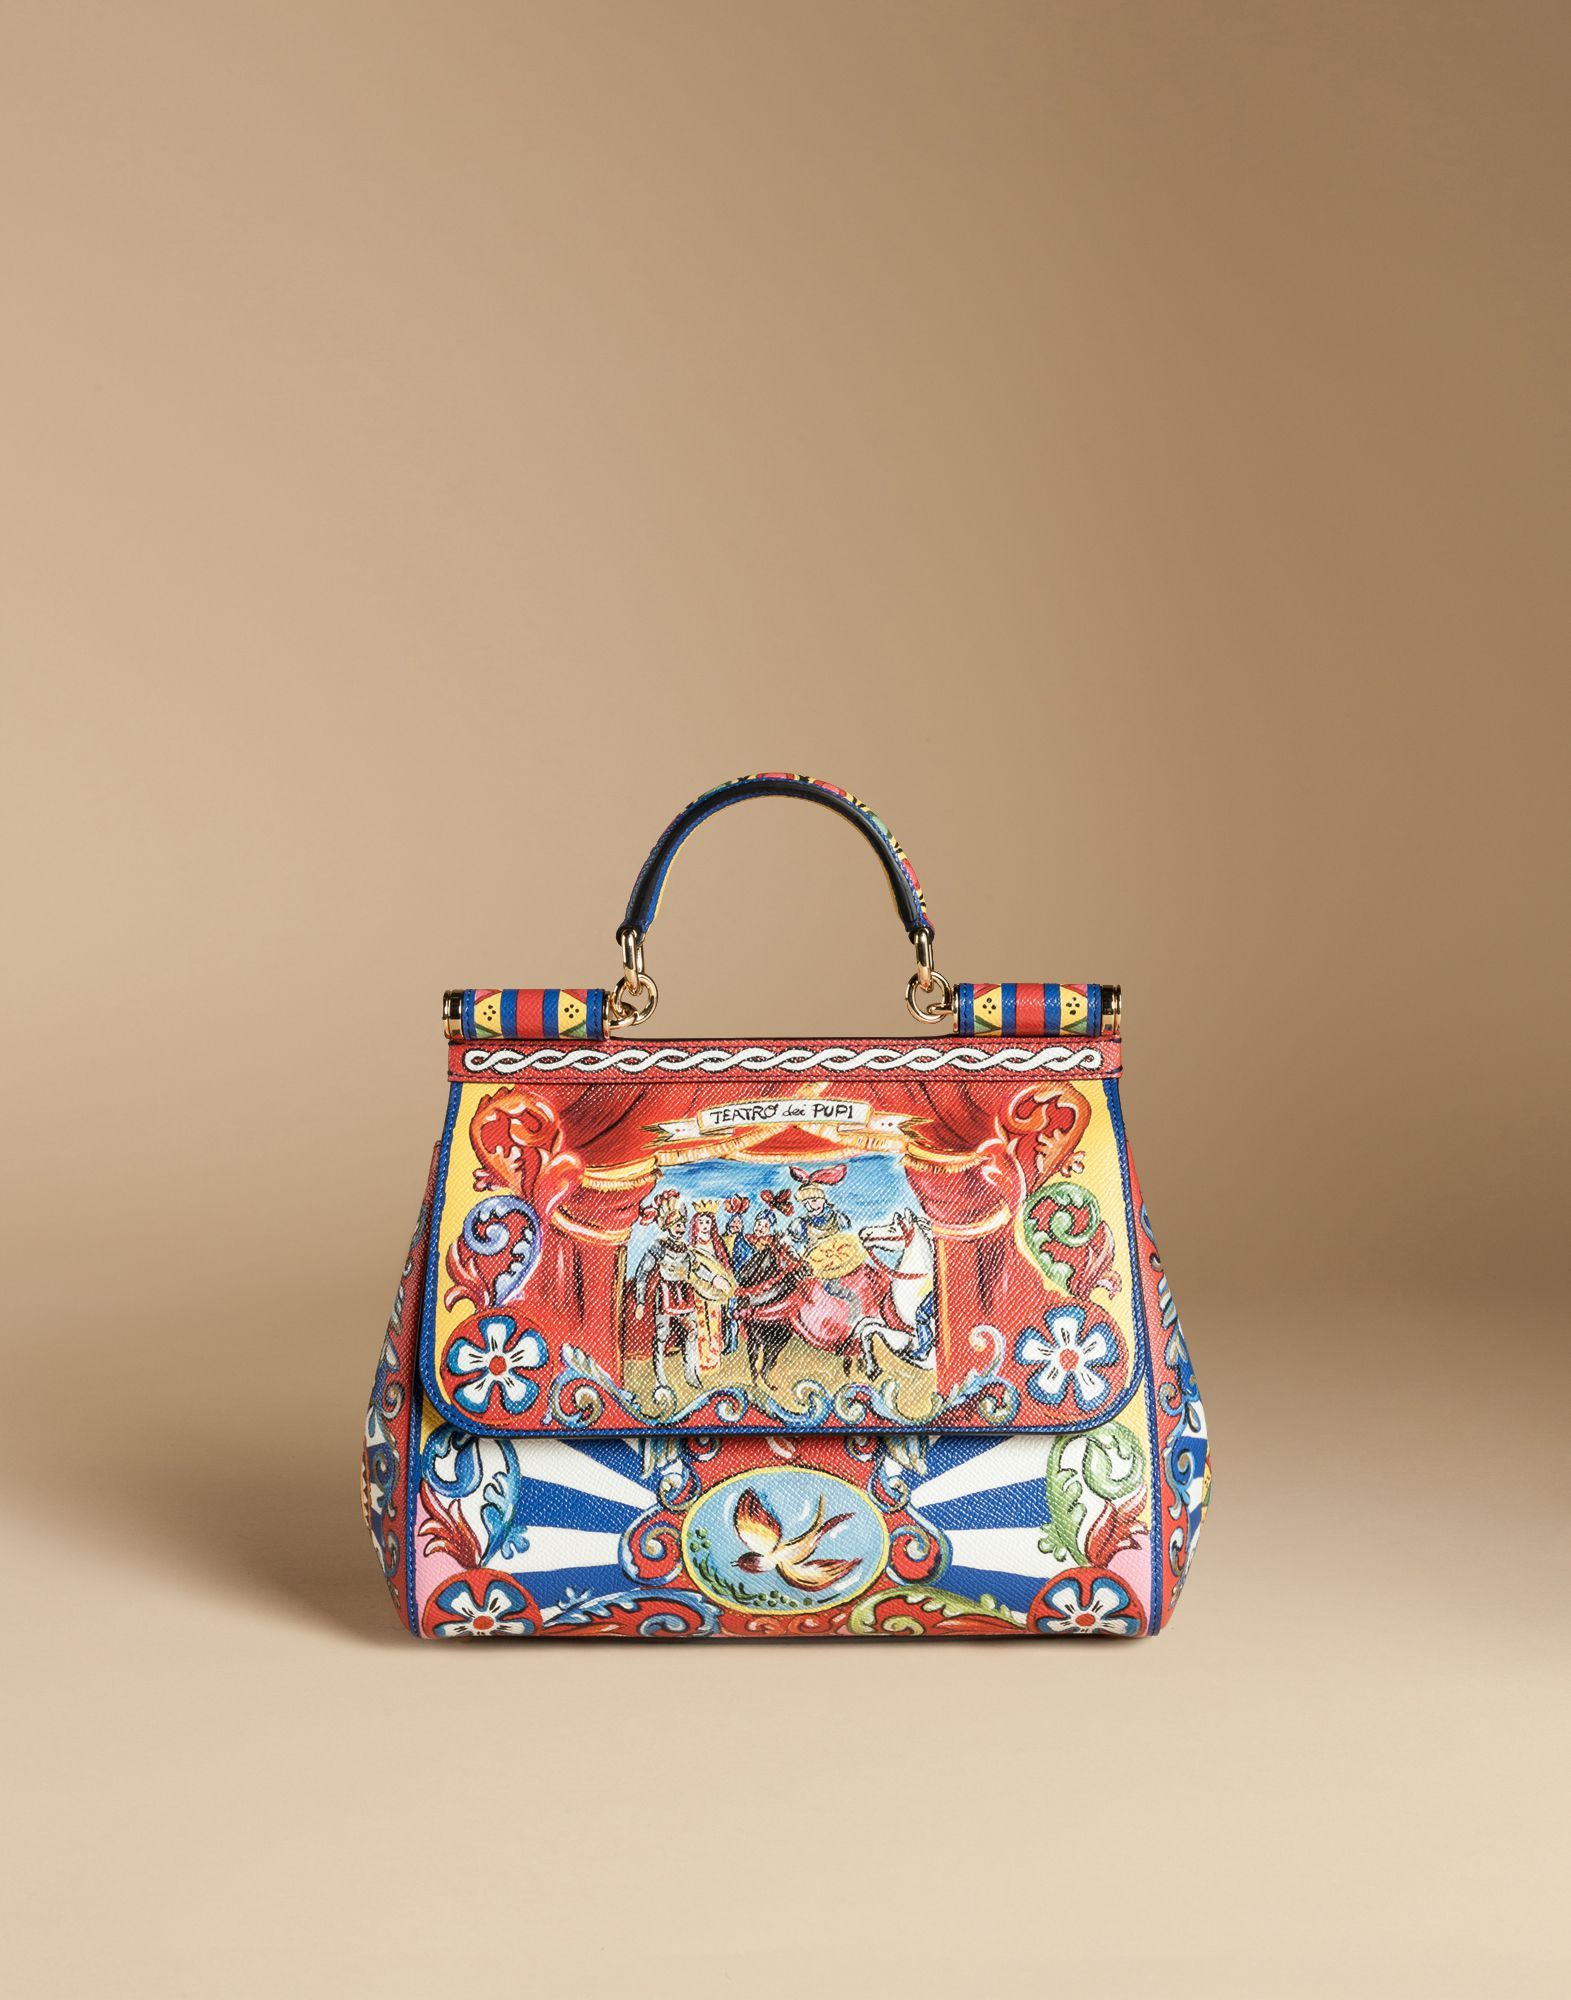 29956b41fd Medium sicily bag in printed dauphine leather